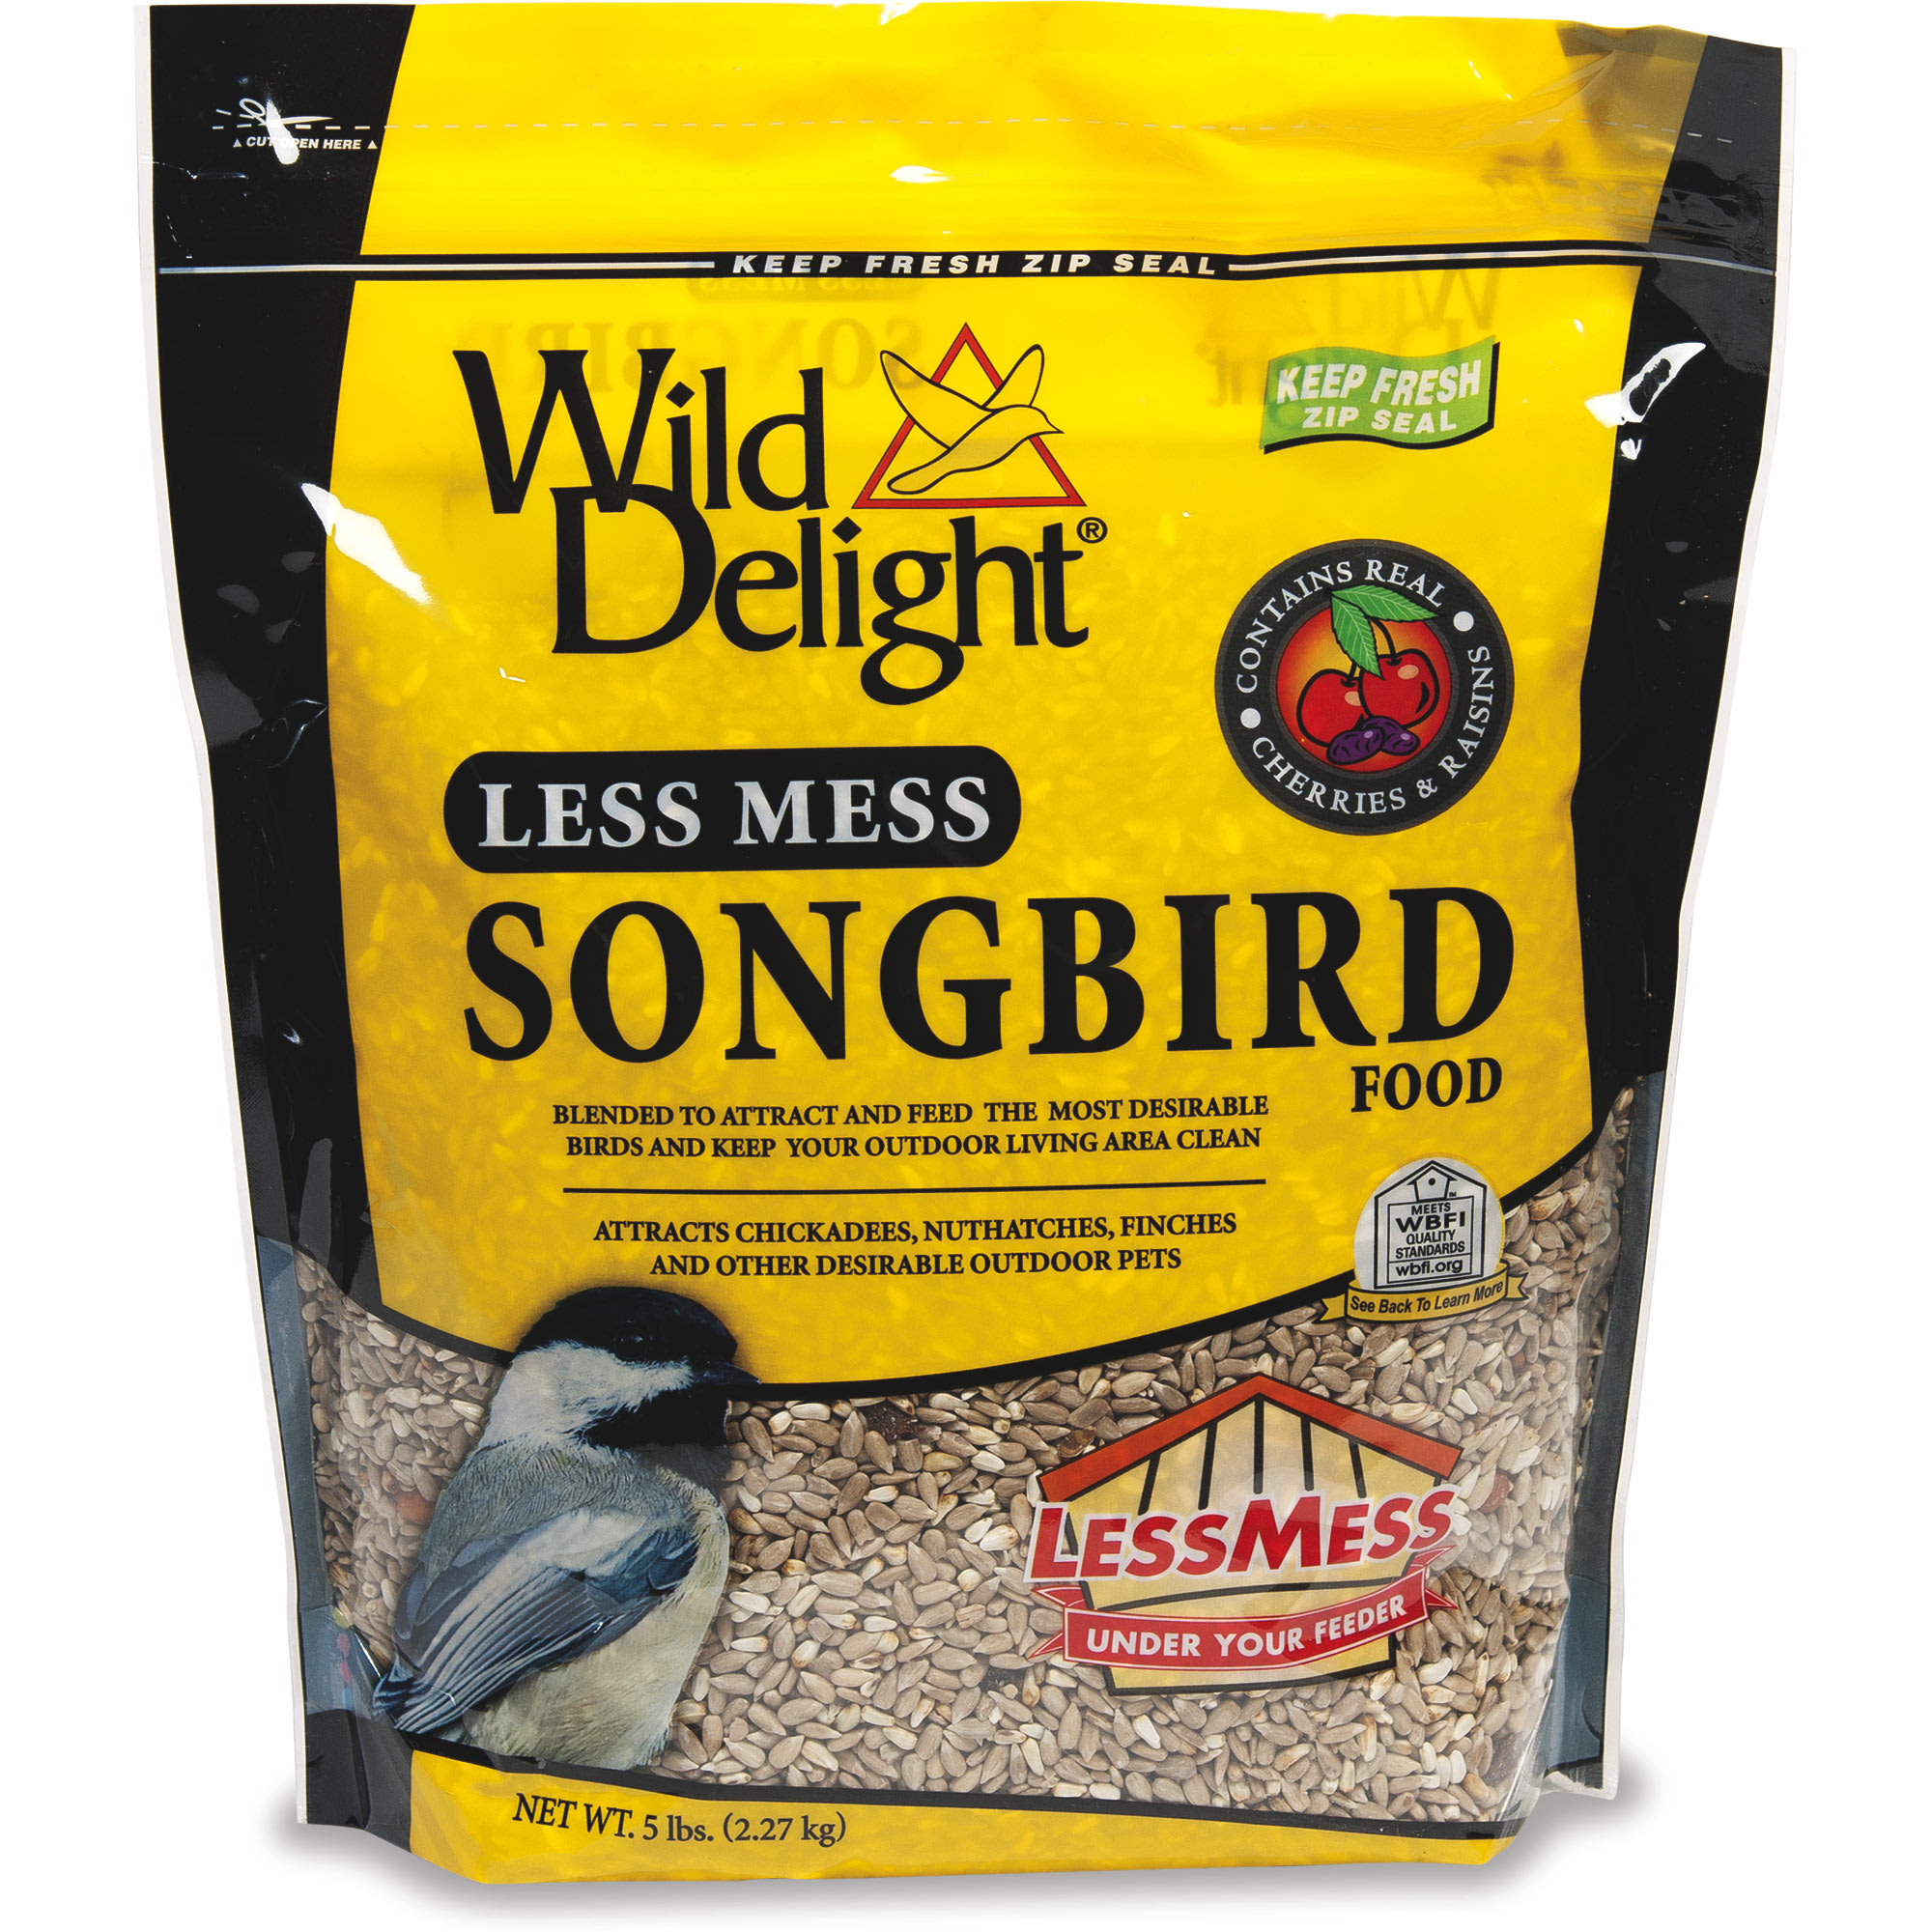 Wild Delight Less Mess Songbird Food, 5 lbs.